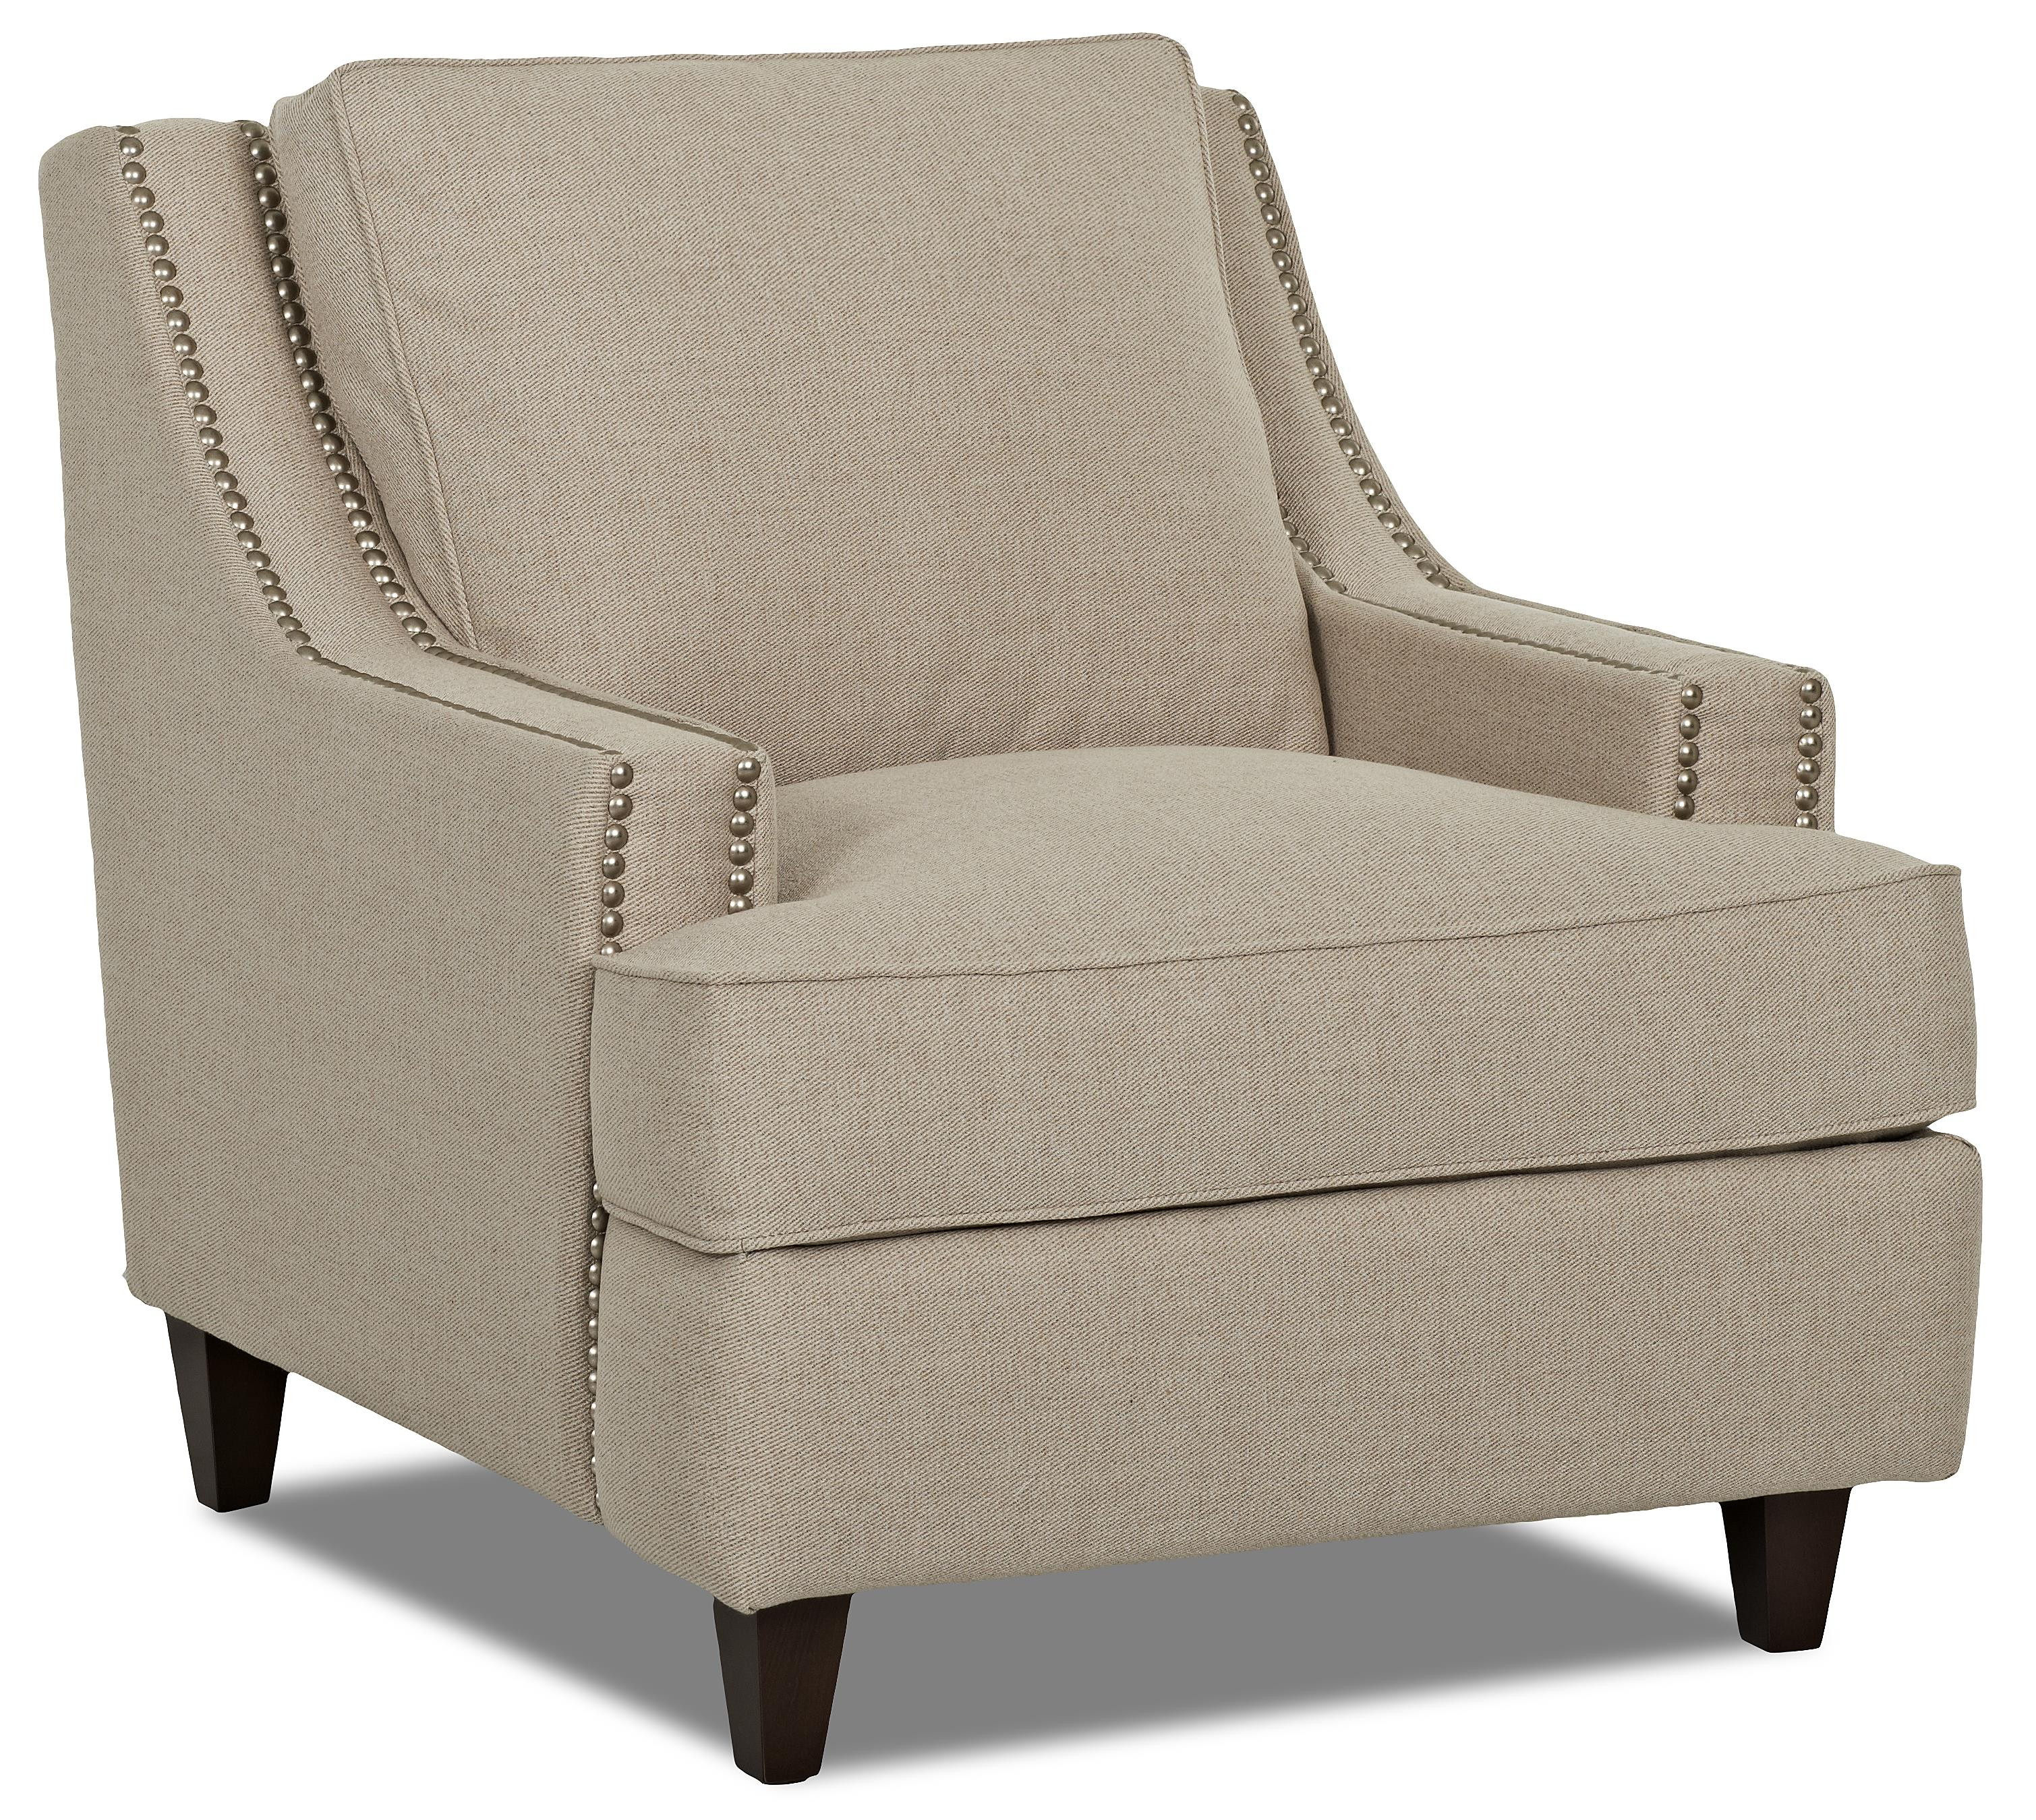 Klaussner Empress Power Hybrid Chair - Item Number: D78313 PWHC-DeauvilleVanilla